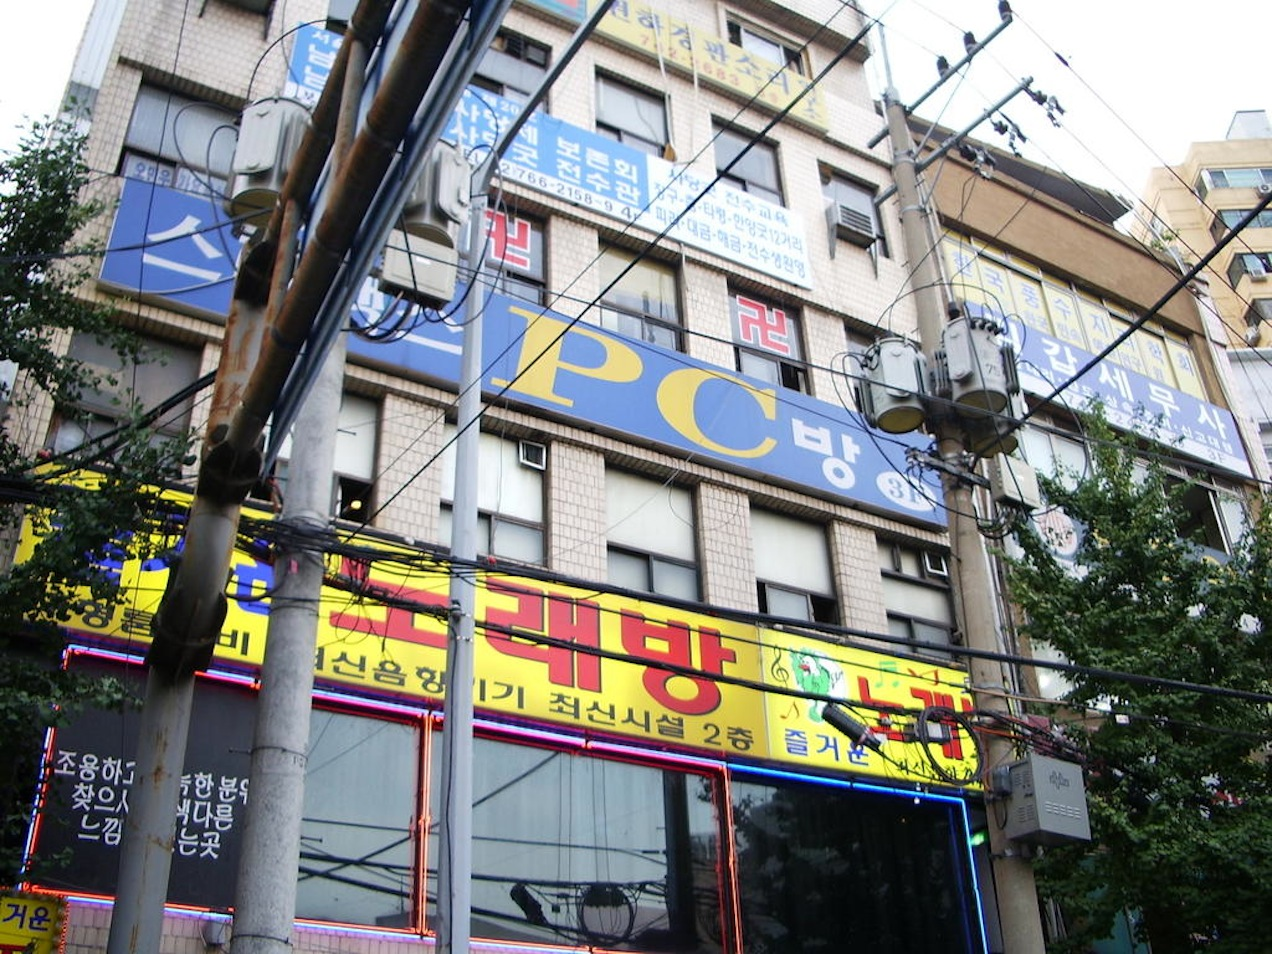 Signage advertising a PC Bang (Internet gaming room) in Jongno, Seoul (2005).